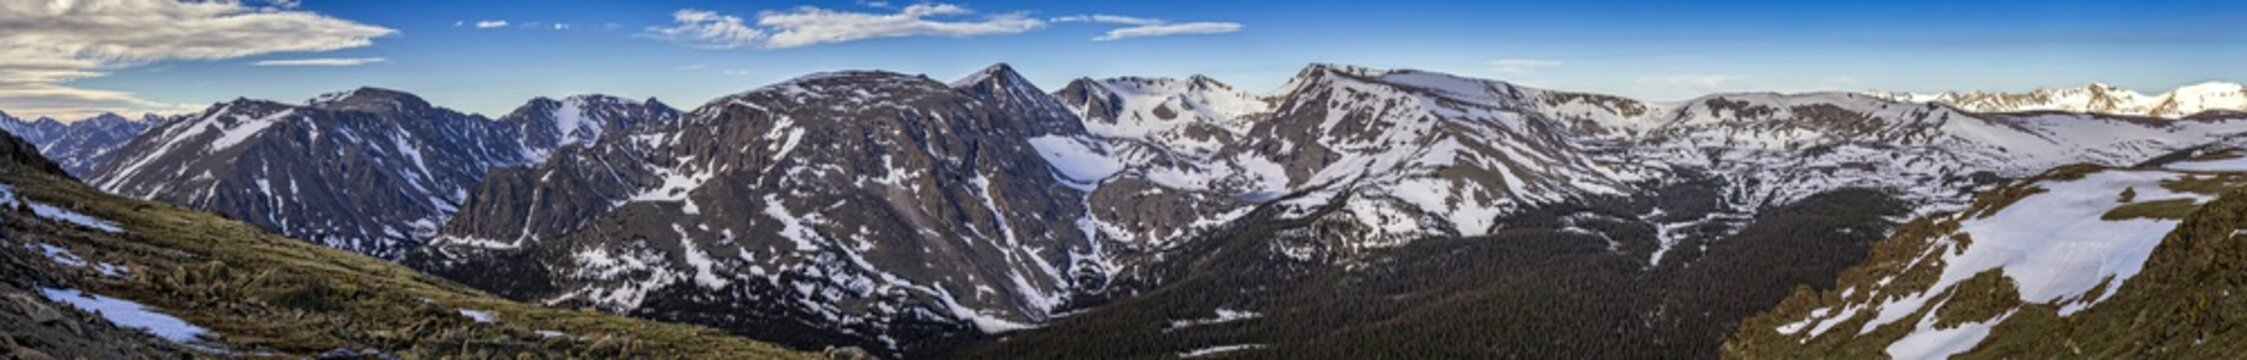 Panoramic view from Trail Ridge Road, Rocky Mountain National Park, Colorado, USA